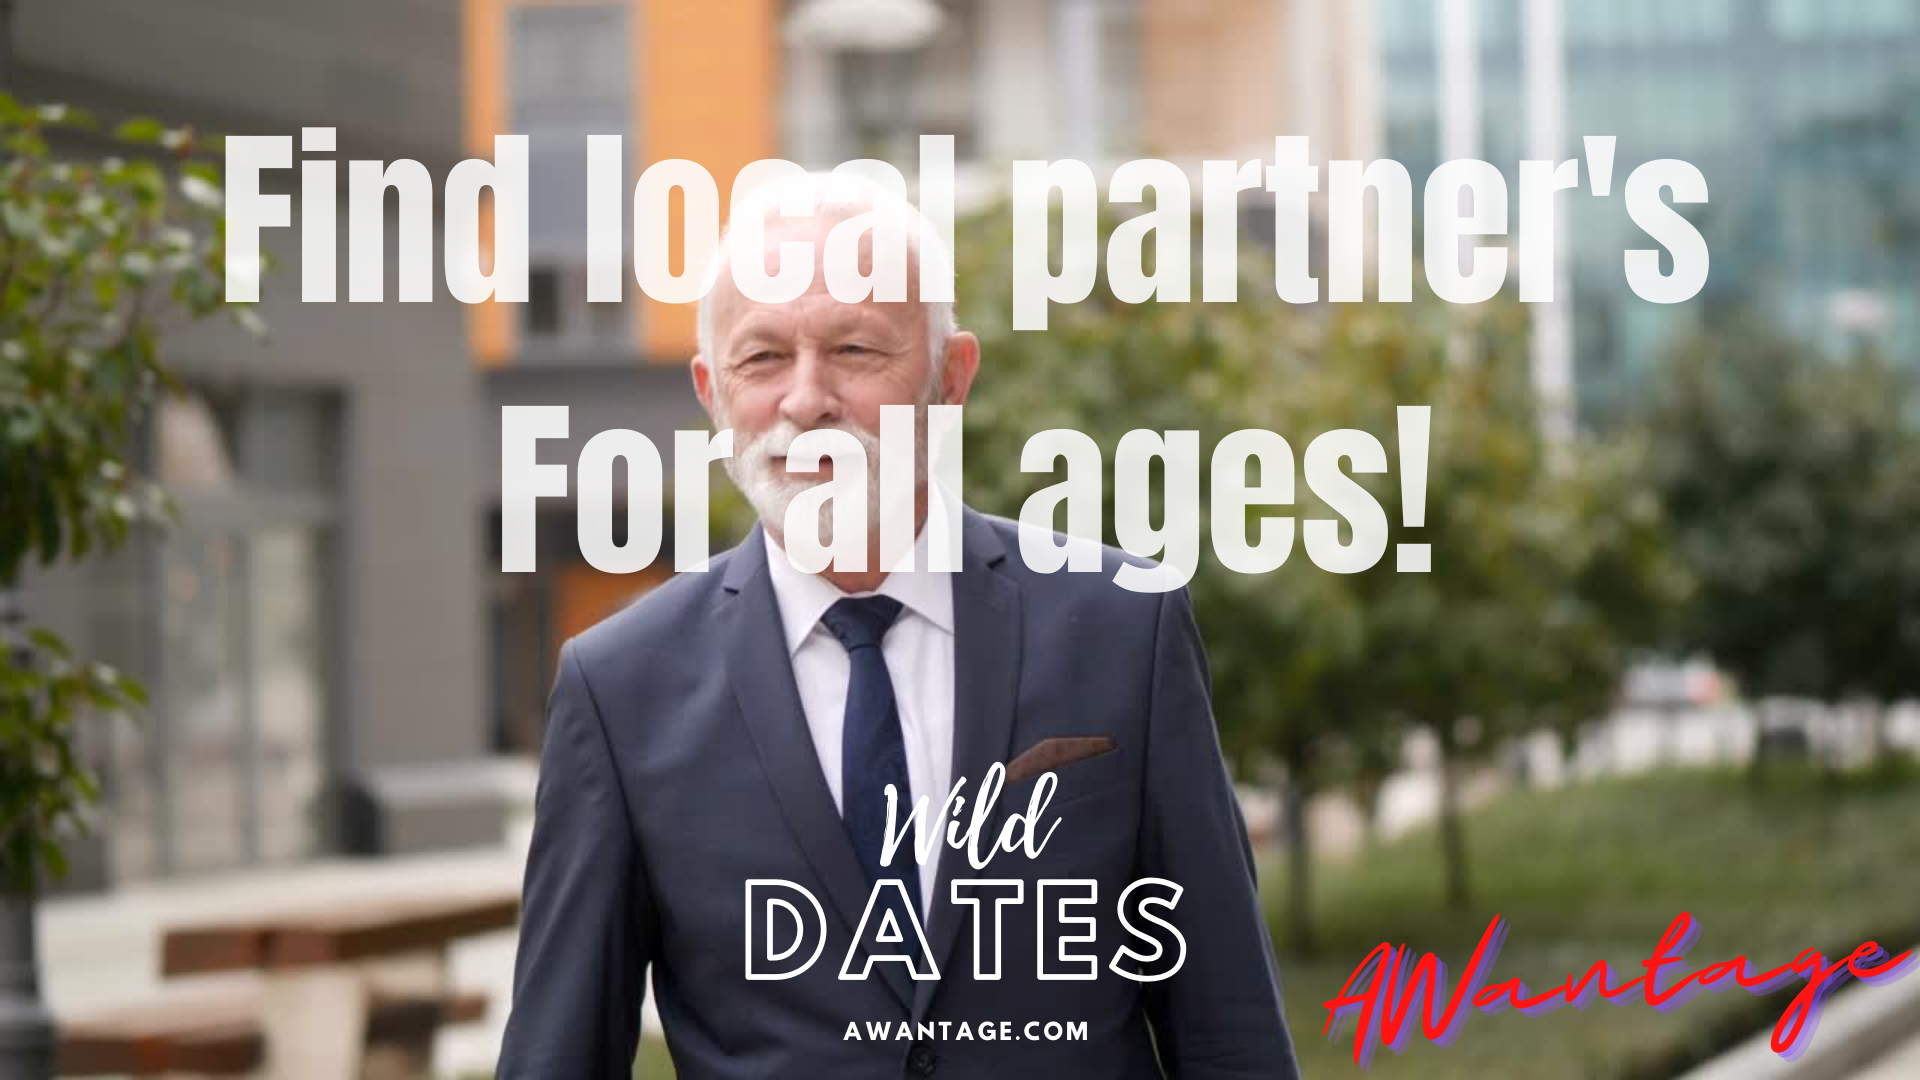 Find the perfect match today!